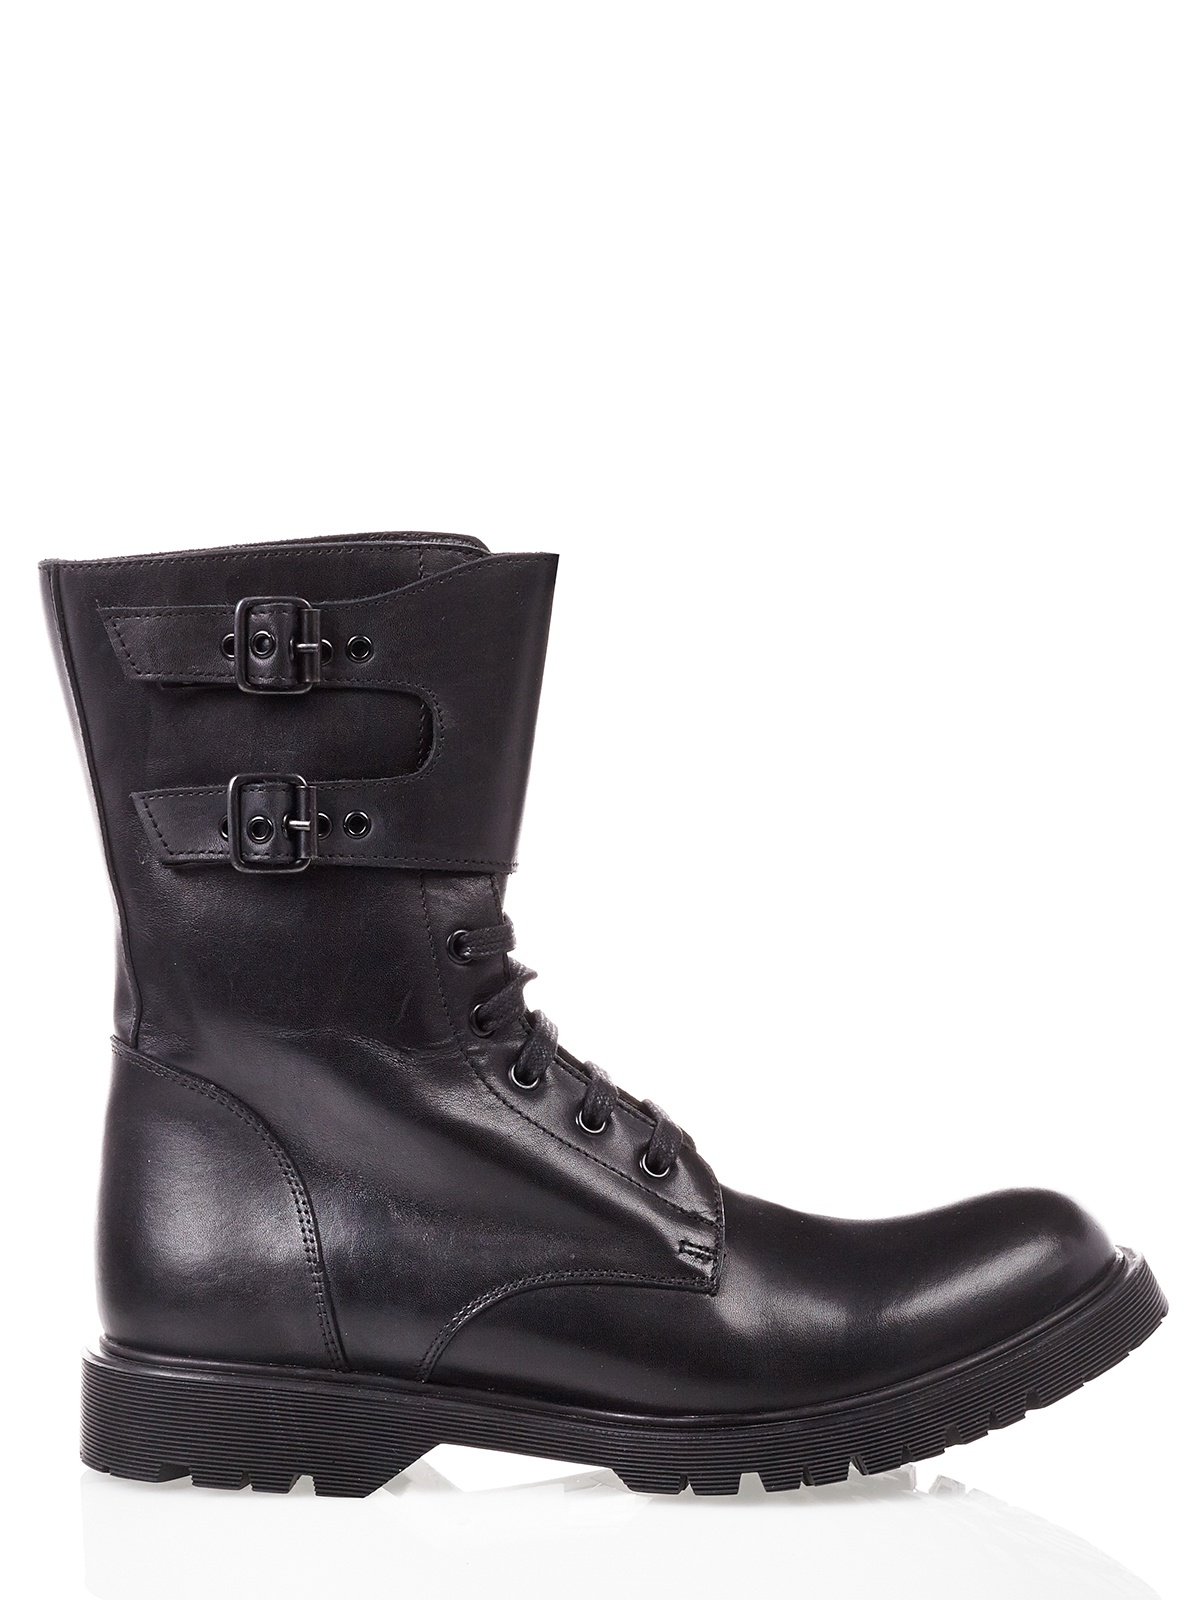 Karl Lagerfeld Boots In Black For Men Lyst